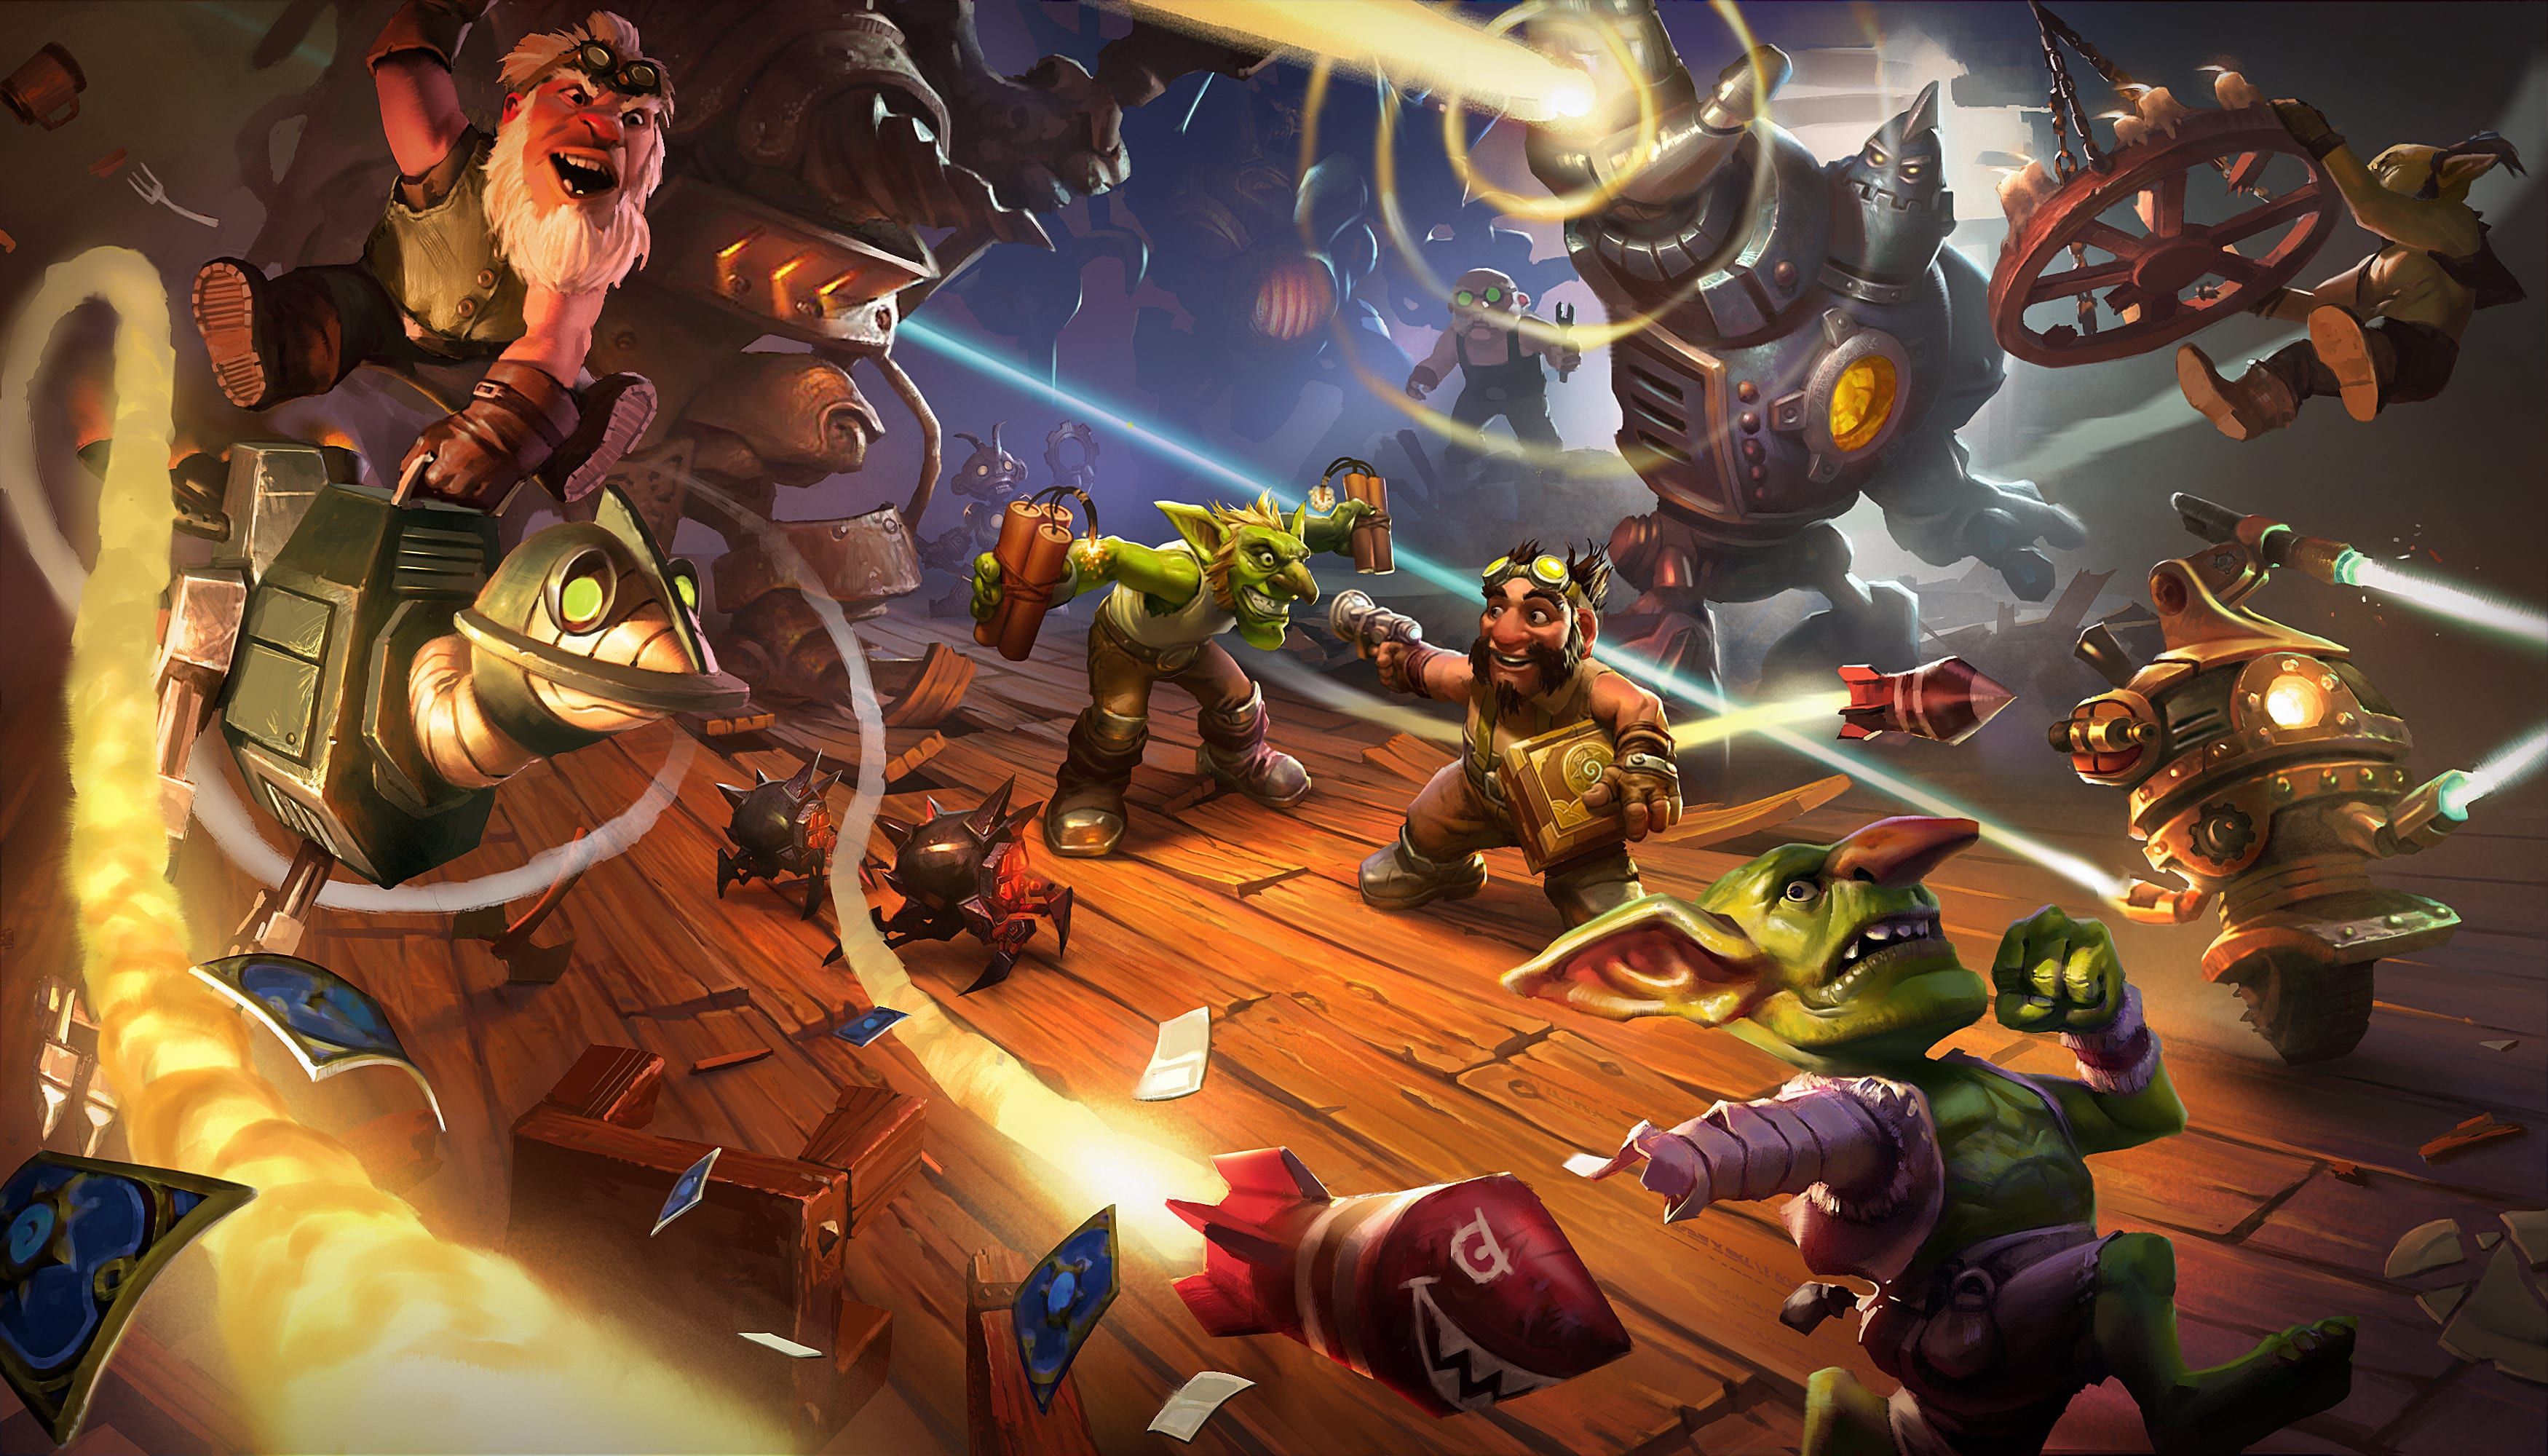 Hearthstone: Goblins Vs. Gnomes widescreen wallpapers